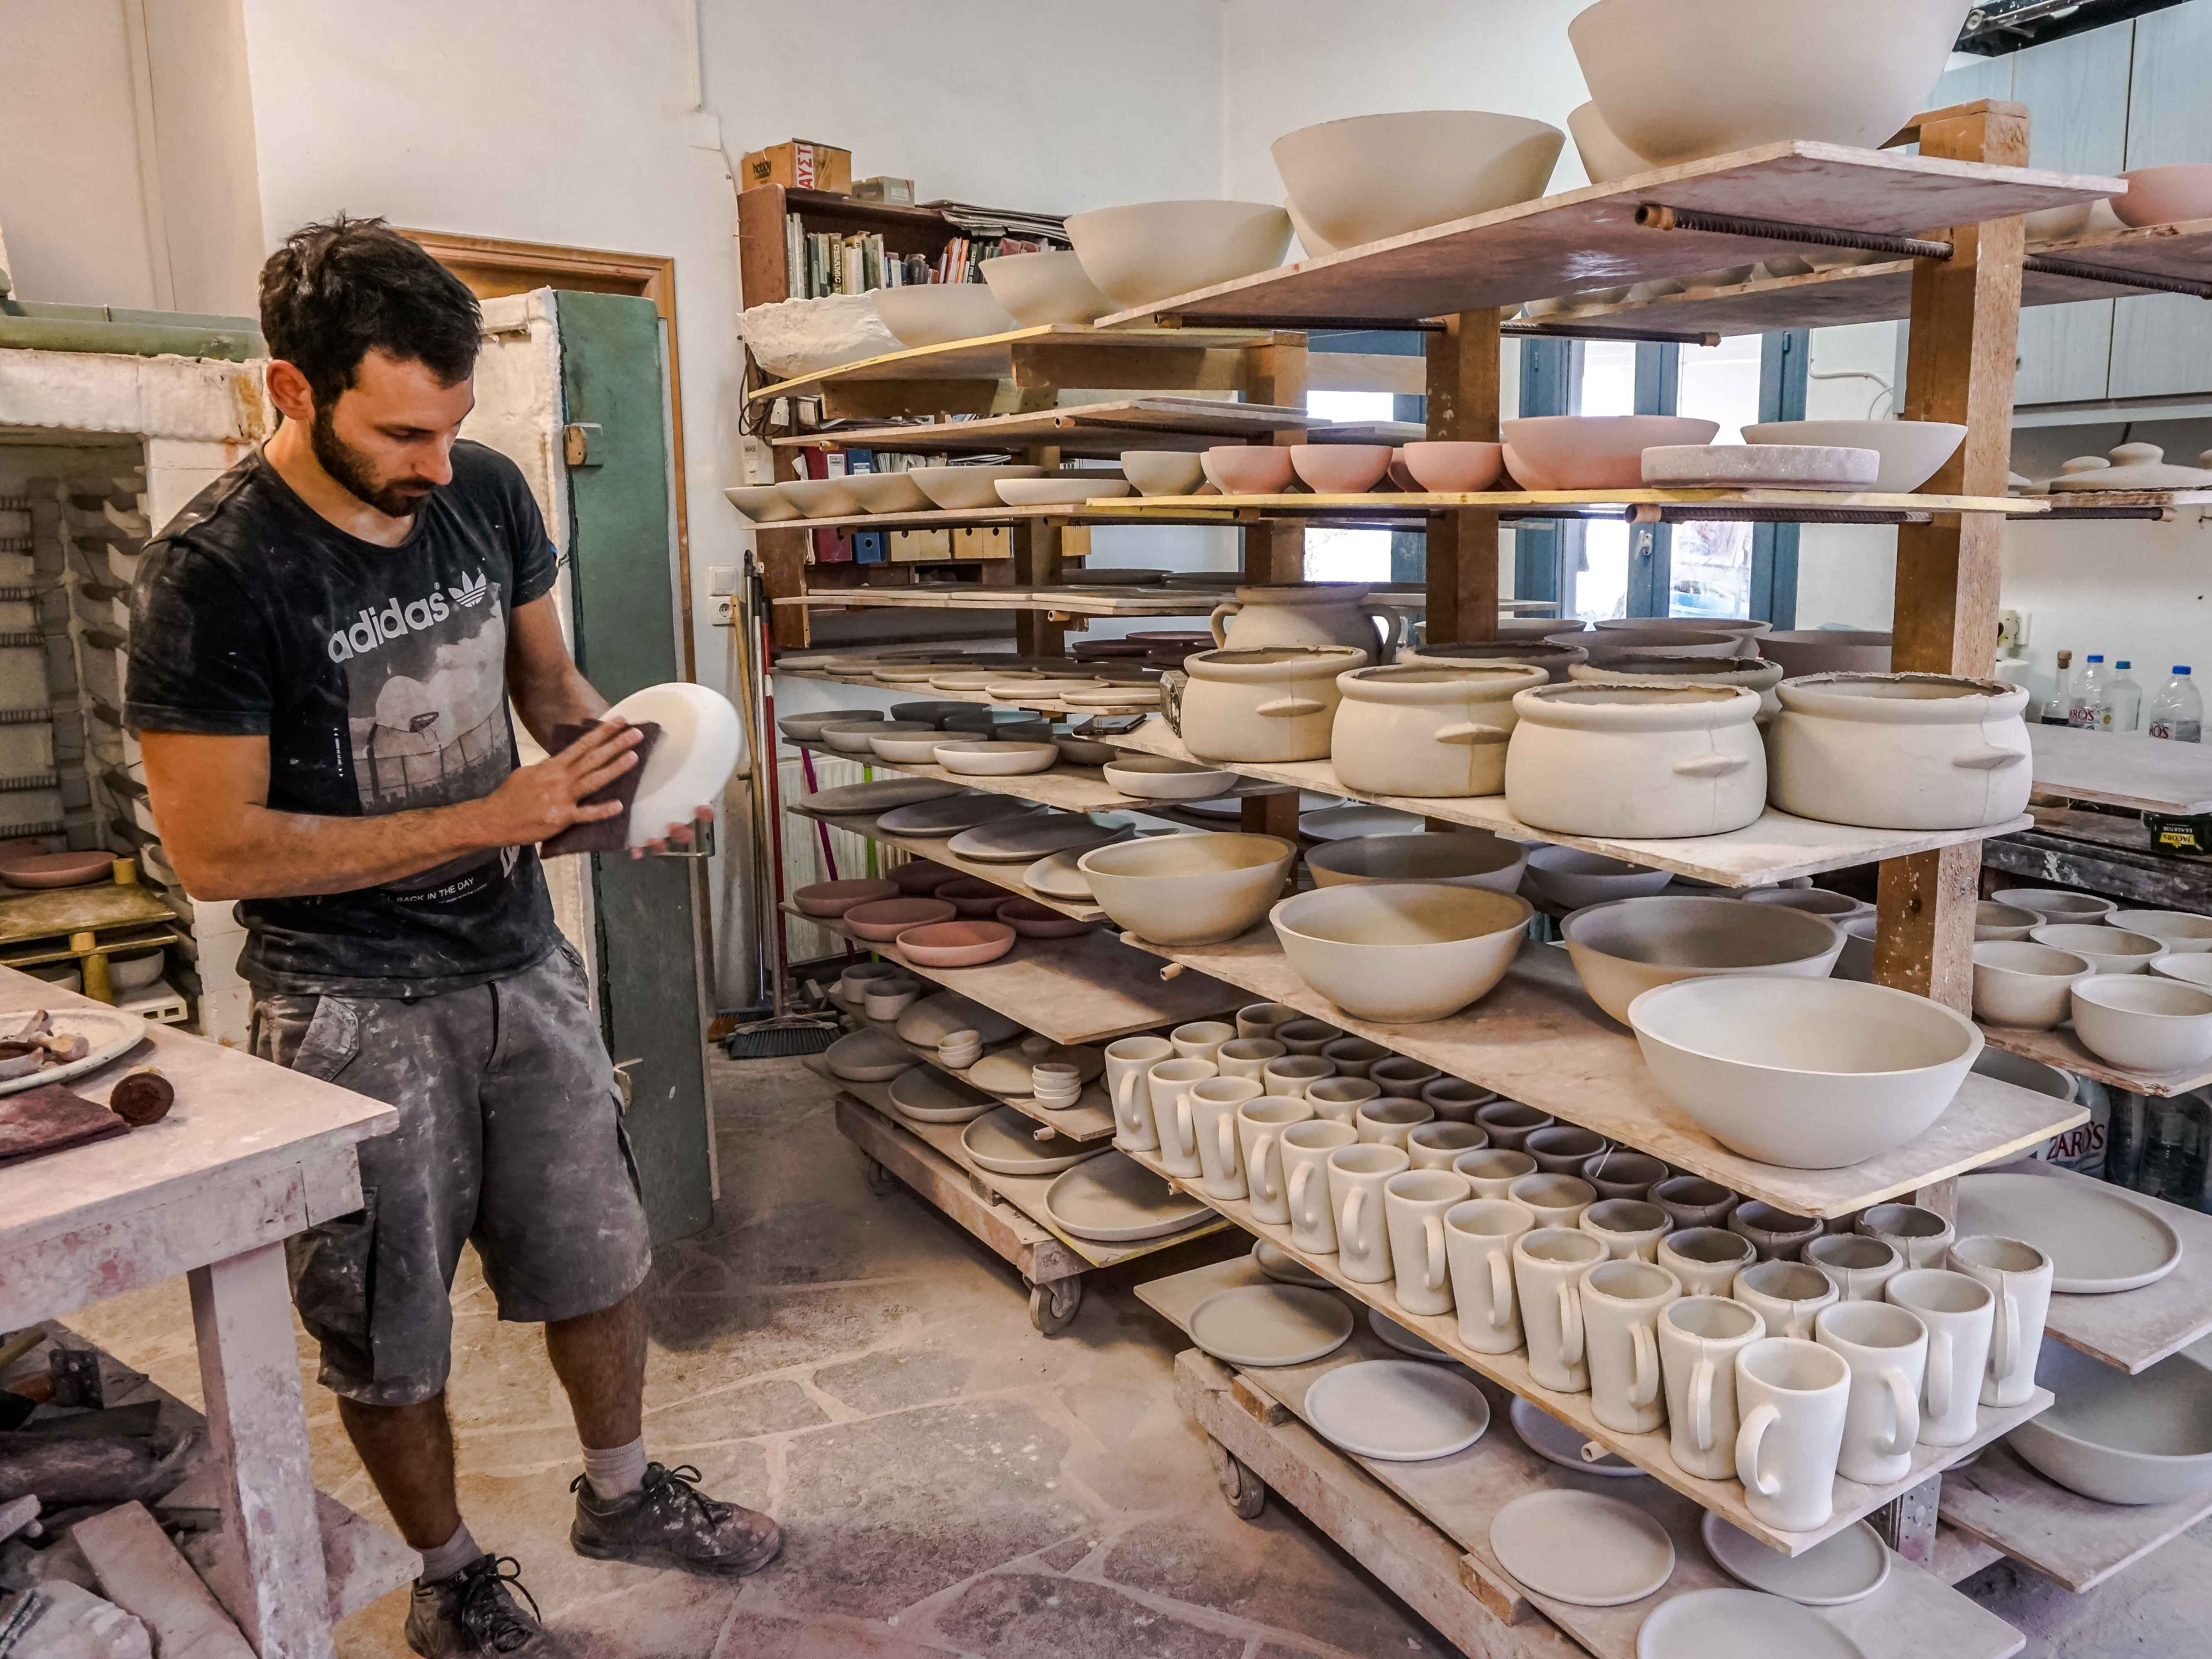 Sifnos stoneware is famous throughout Greece. Its handmade ceramics are created on a pottery wheel with techniques handed down from generations past. All restaurants on Sifnos prepare meals in the classic clay pots.